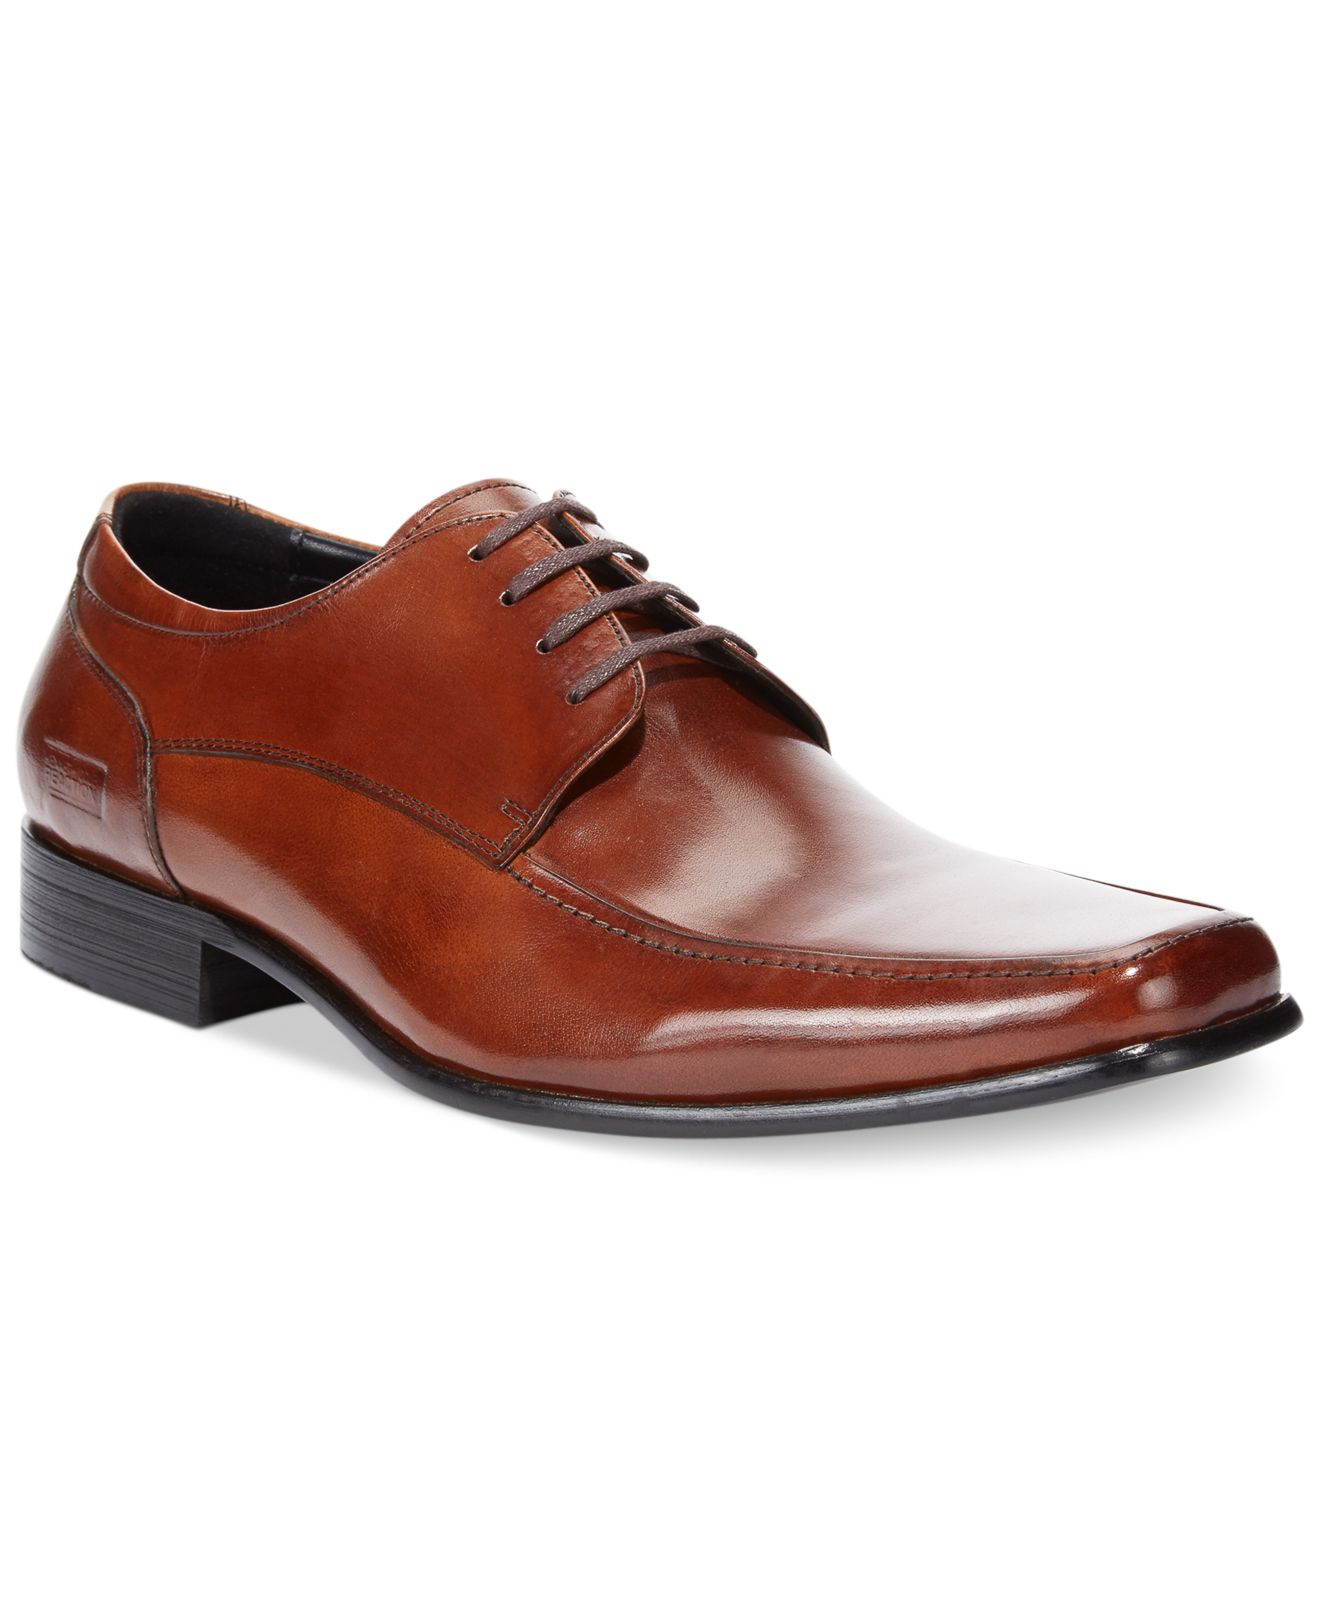 Kenneth Cole Reaction Shoes Womens Oxfords